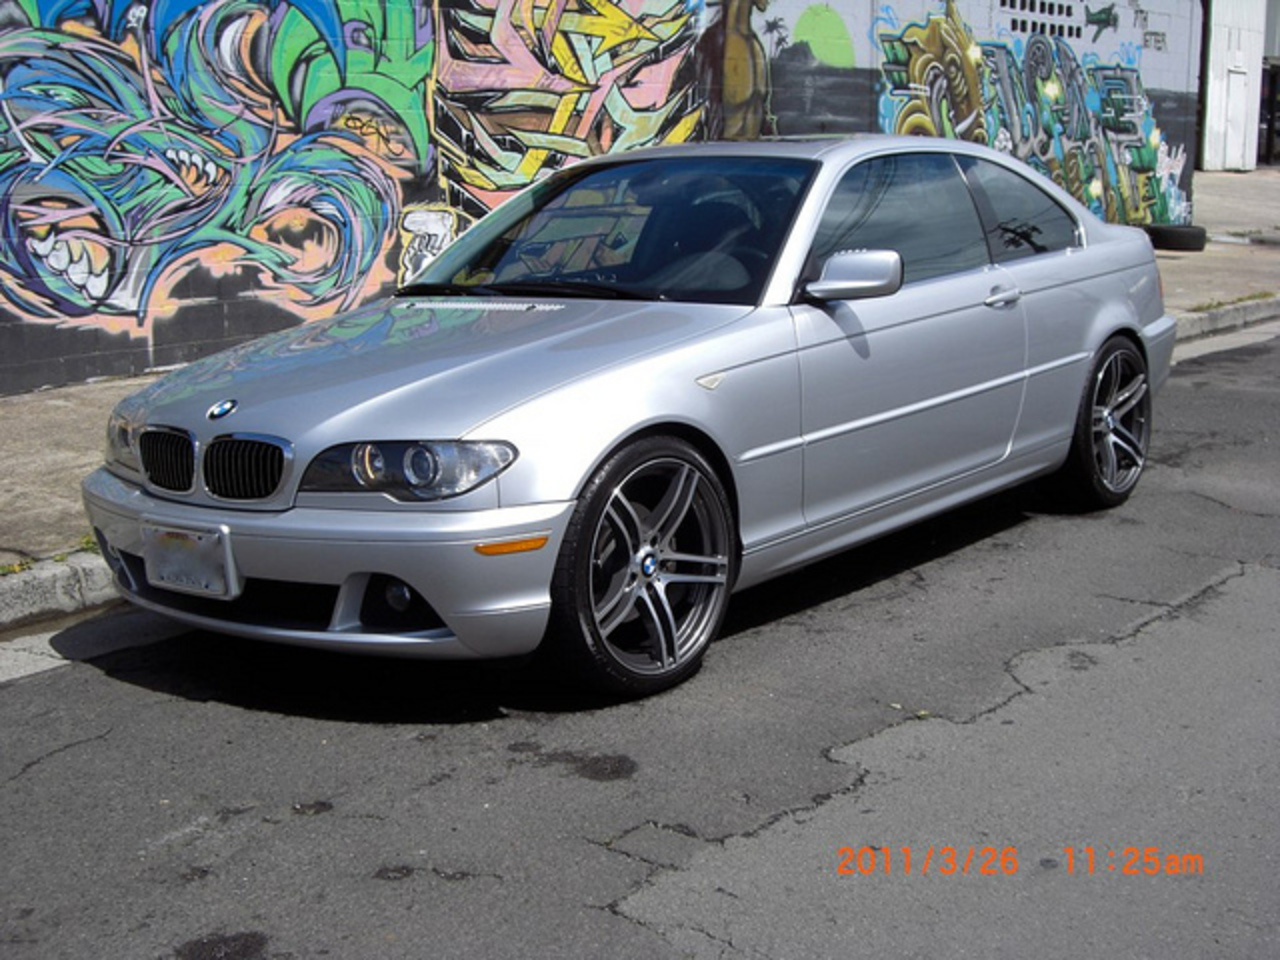 2004 BMW 325Ci | Flickr - Photo Sharing!